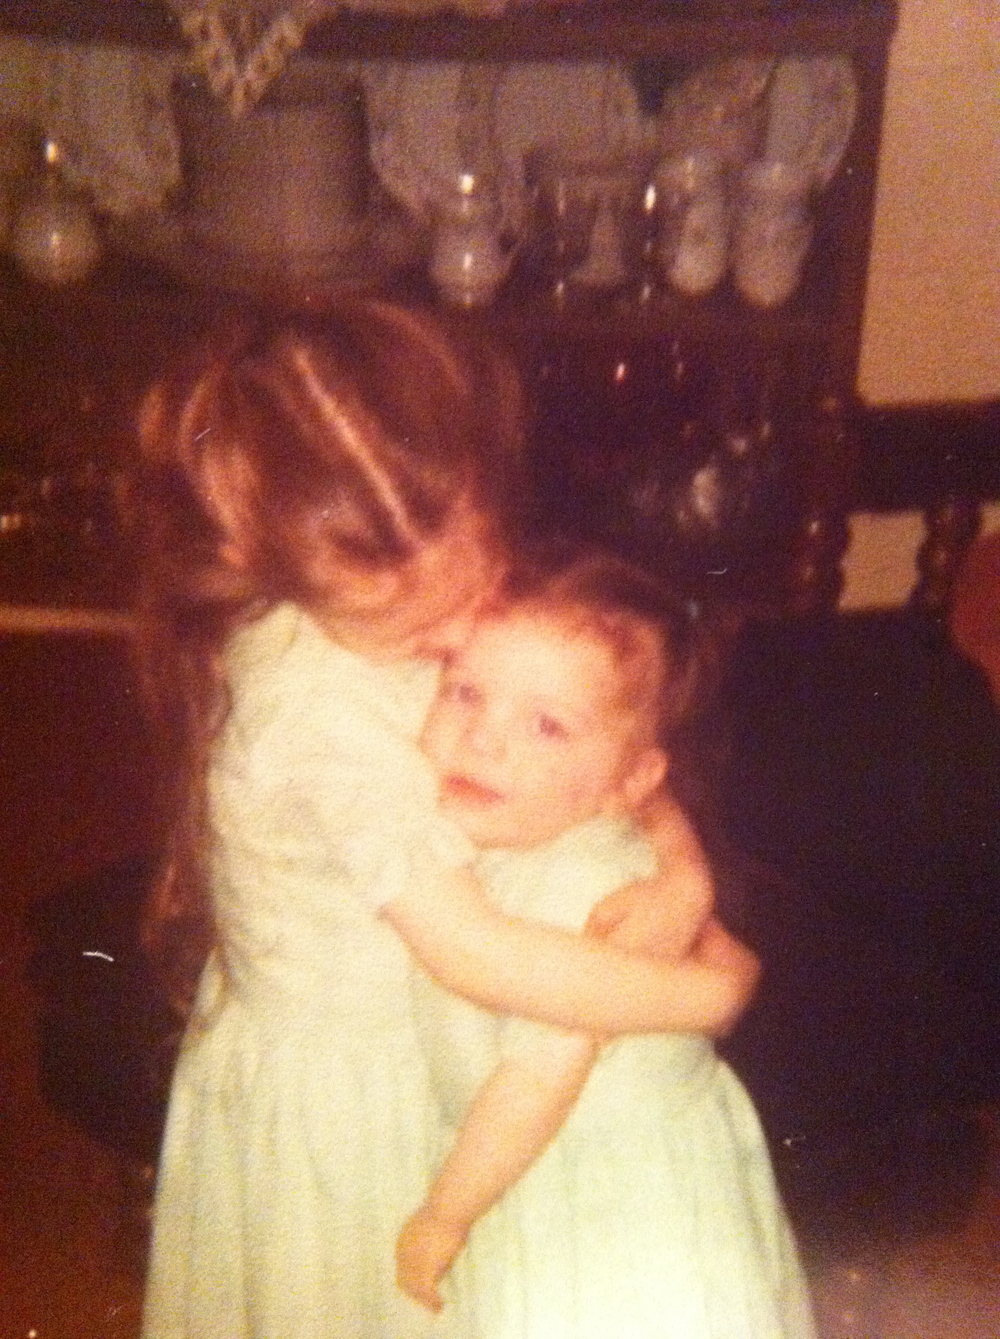 My sister holding me close.